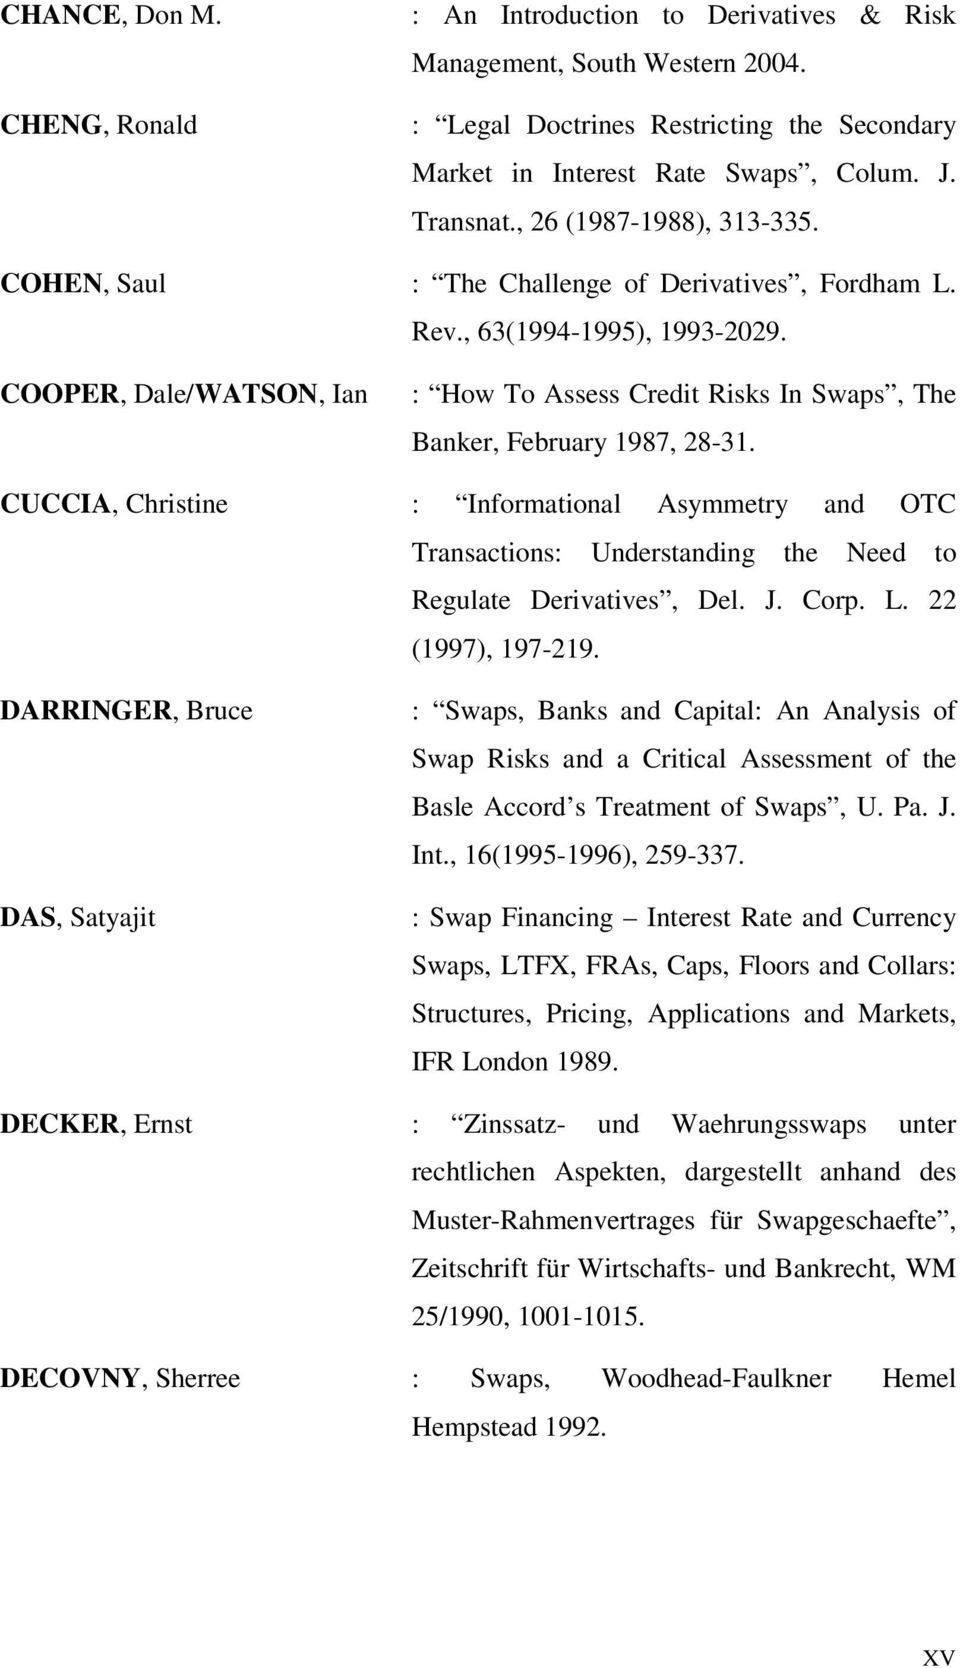 COOPER, Dale/WATSON, Ian : How To Assess Credit Risks In Swaps, The Banker, February 1987, 28-31.